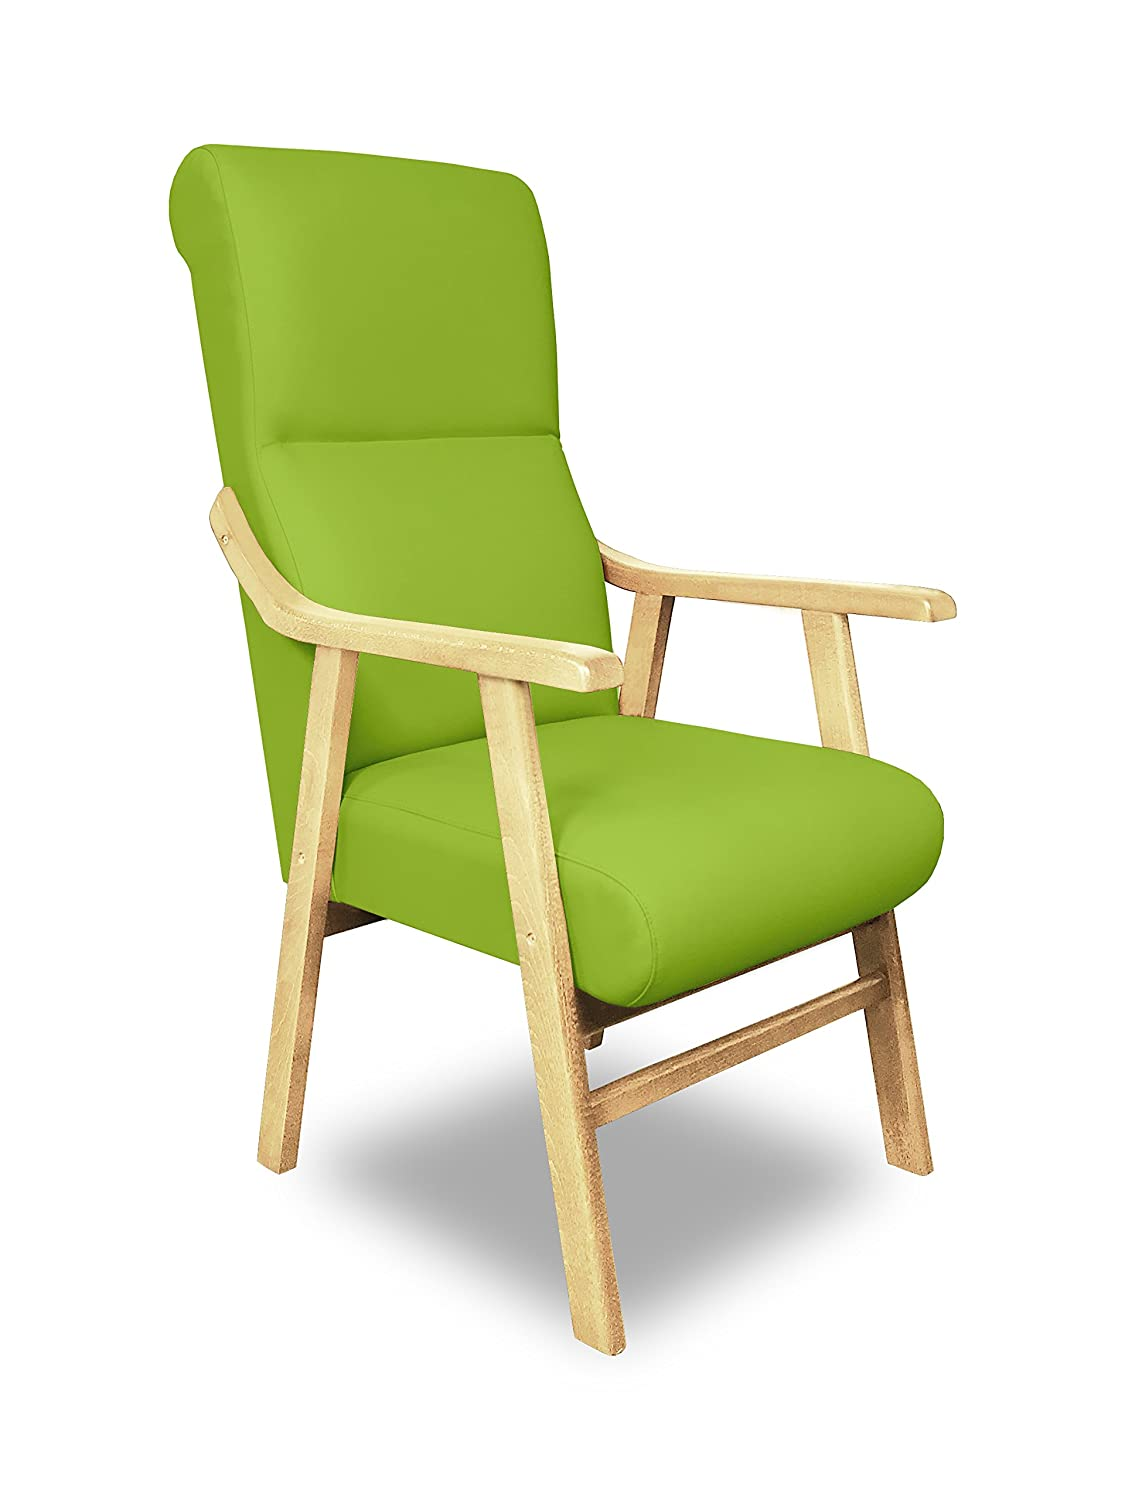 SERMAHOME Chair Armchair Boston. Beech Wood. Upholstered Leatherette. ALTURA: 110 cm; ANCHO: 58 cm; FONDO: 66 cm. white